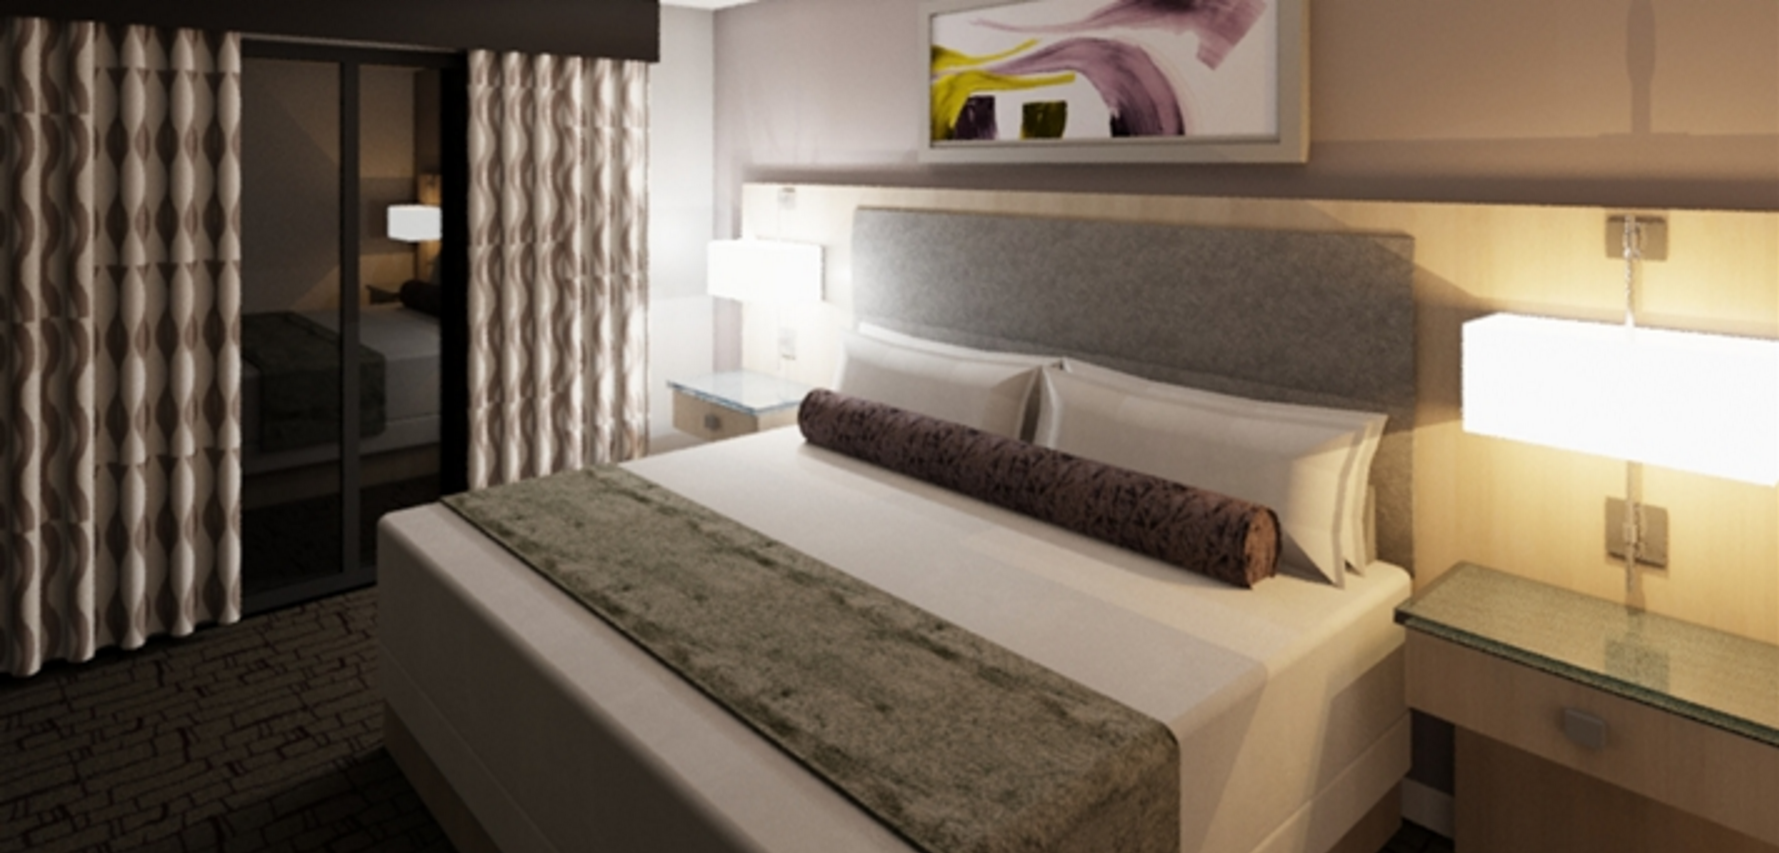 Suite con Letto Matrimoniale King Size - Accessibile per Non Udenti (1 King Hearing Accessible 2 Room Suite)